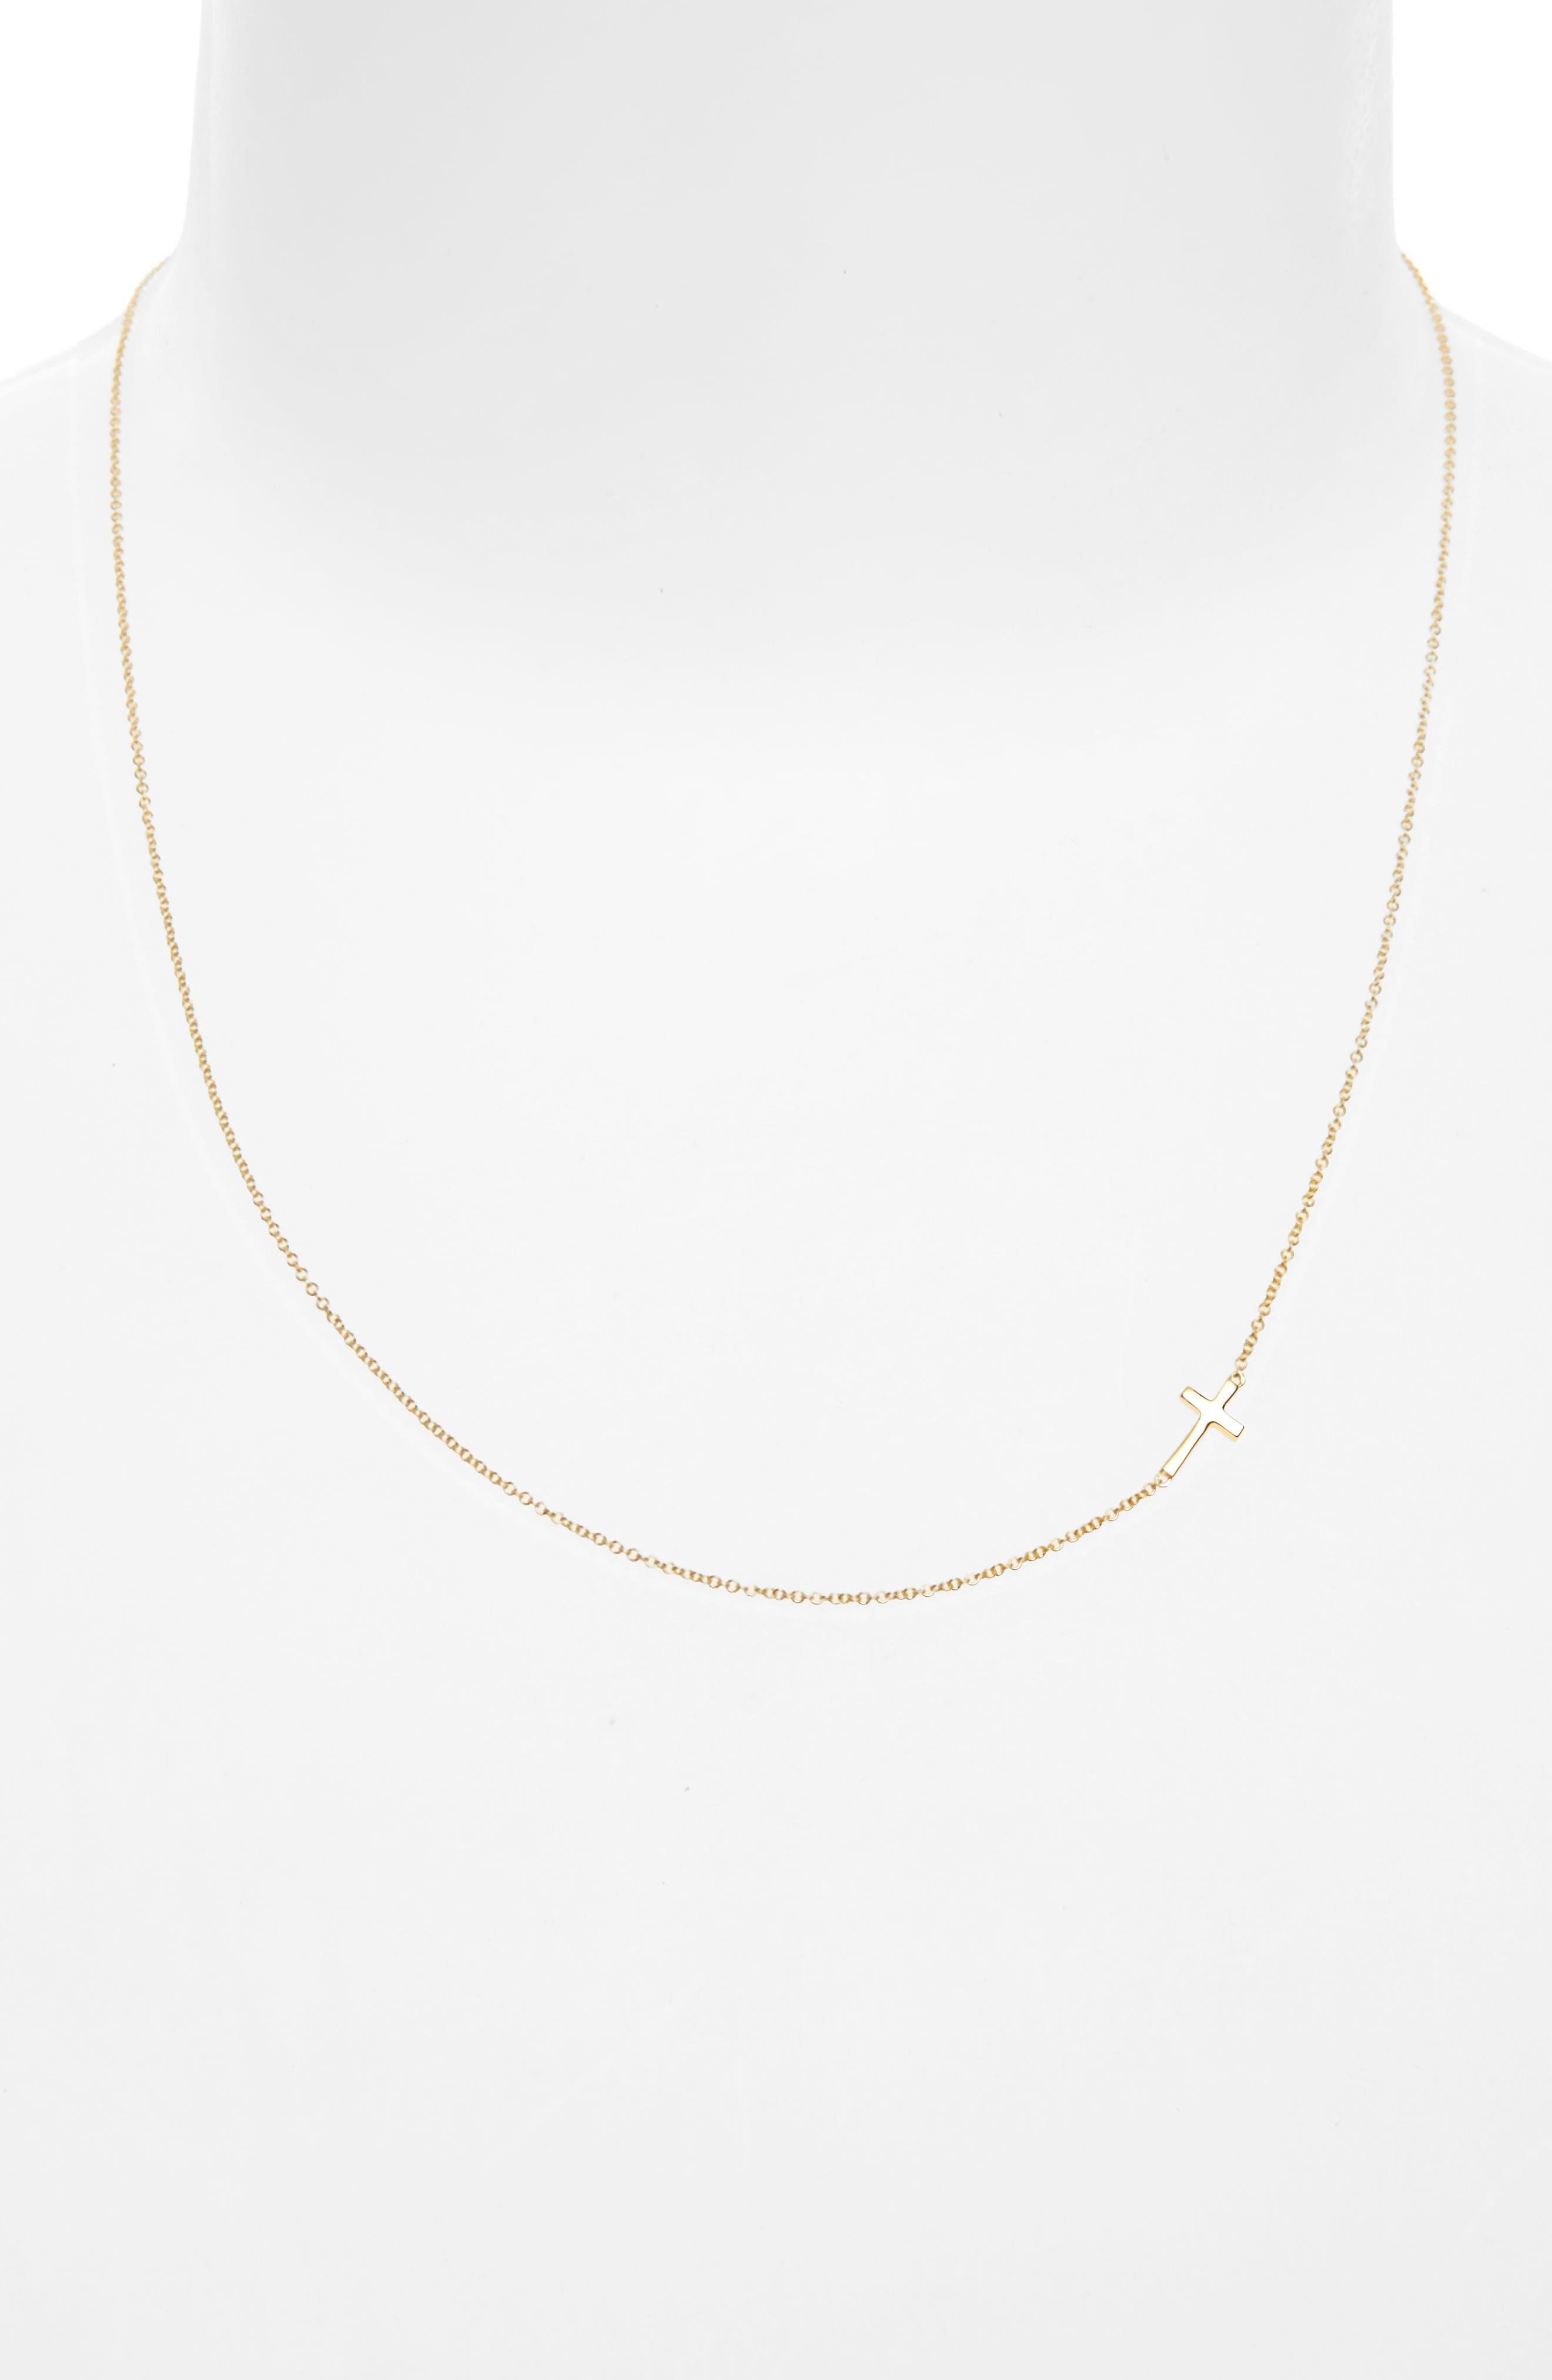 Cross Station Necklace,                             Alternate thumbnail 2, color,                             YELLOW GOLD